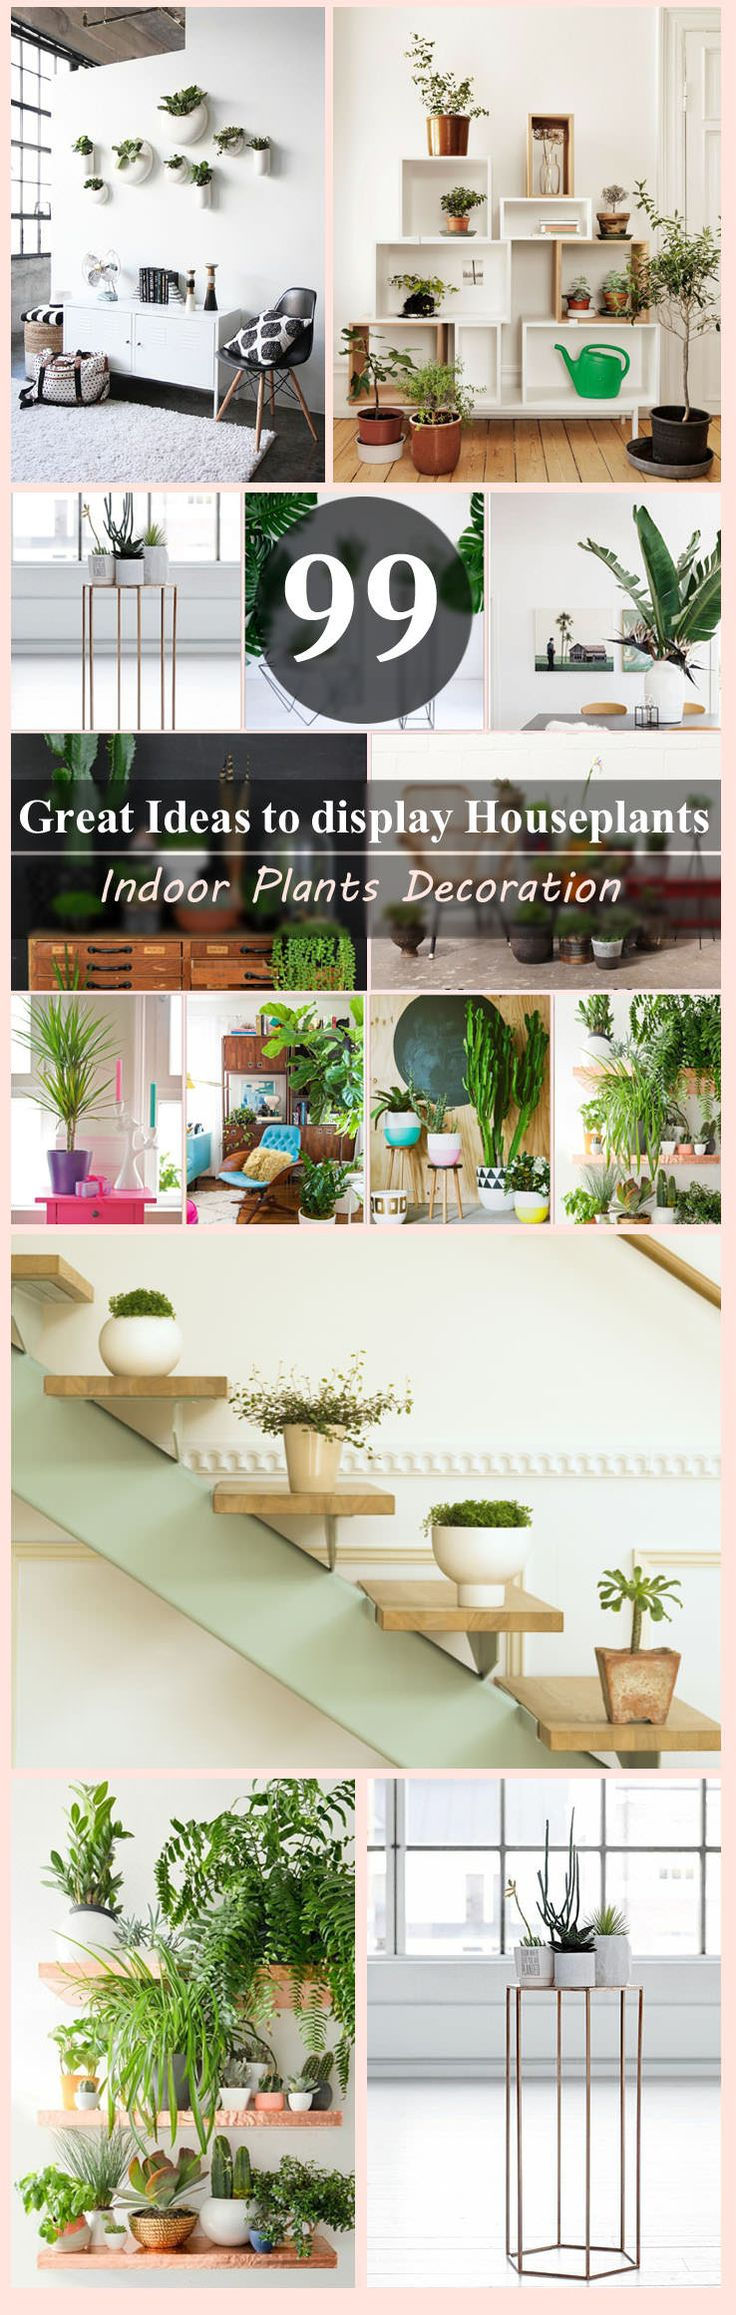 Indoor plants decorationmakes your living space more comfortable, breathable, and luxurious. See these 99 ideas on how to display houseplants for inspiration.